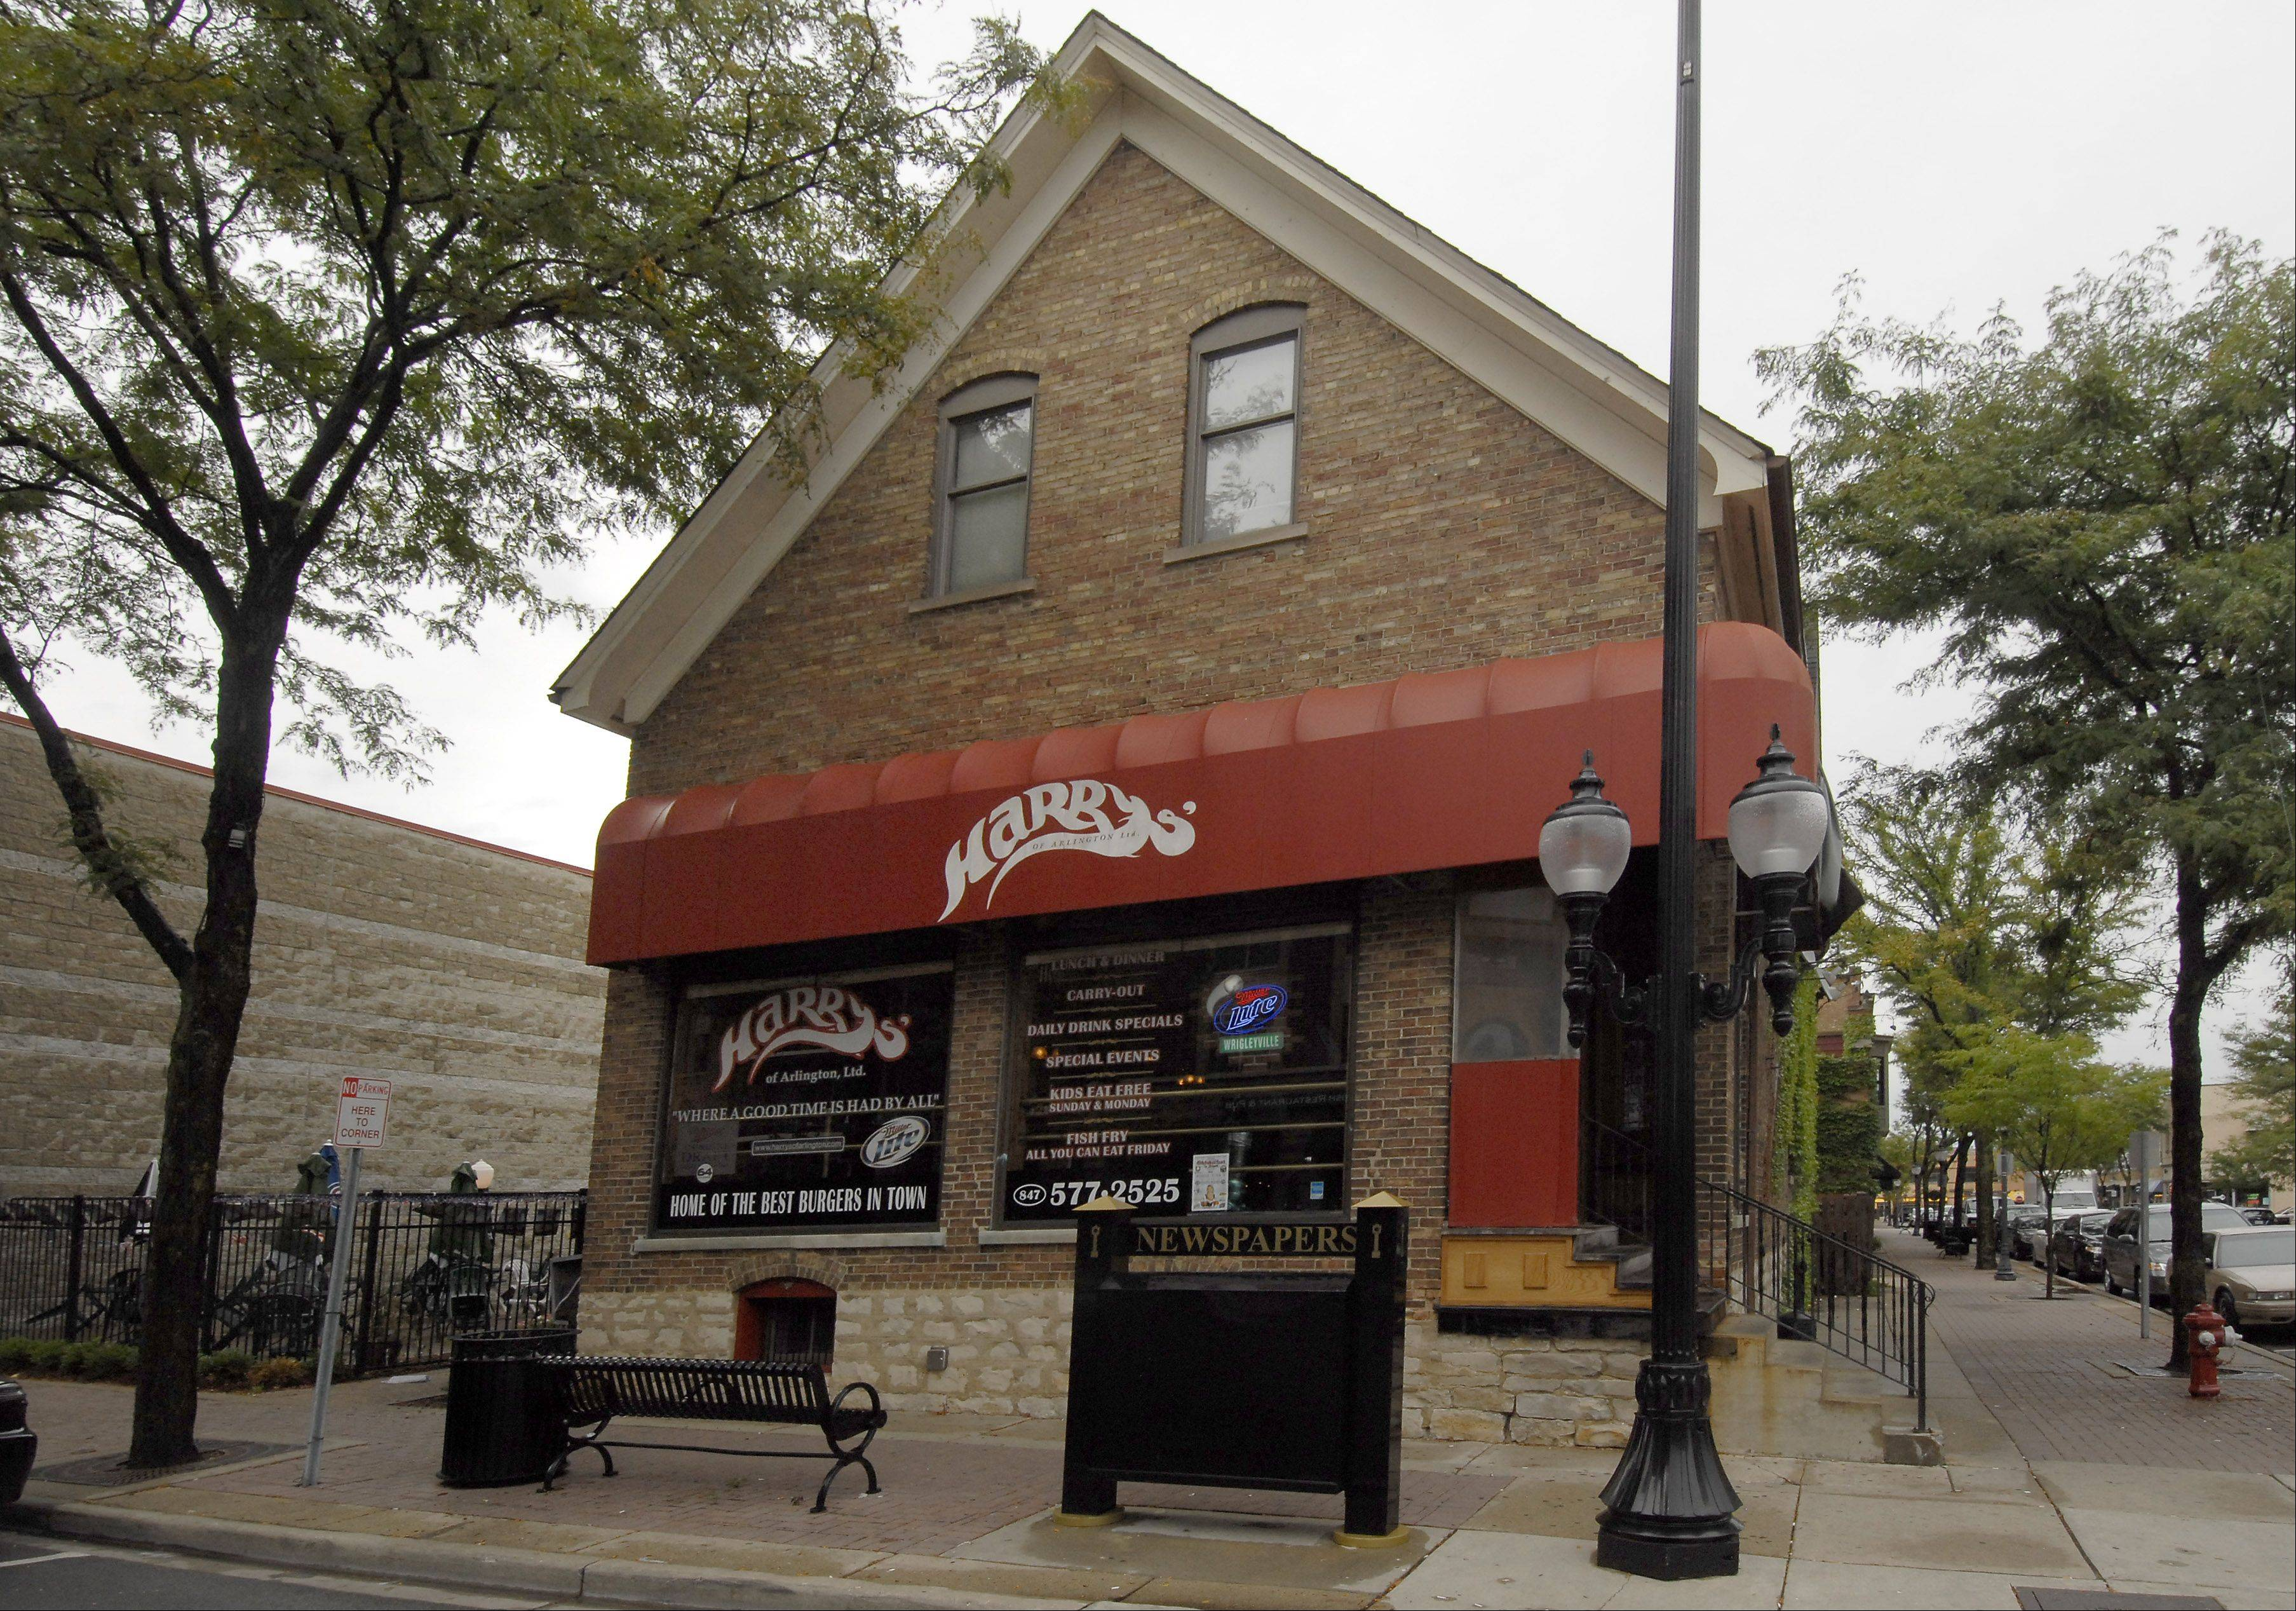 Harry's of Arlington, at 1 N. Vail Ave in downtown Arlington Heights, received a second extension this week to complete work on a planned expansion. The project includes a 1,500-square-foot addition along the north side of the restaurant.